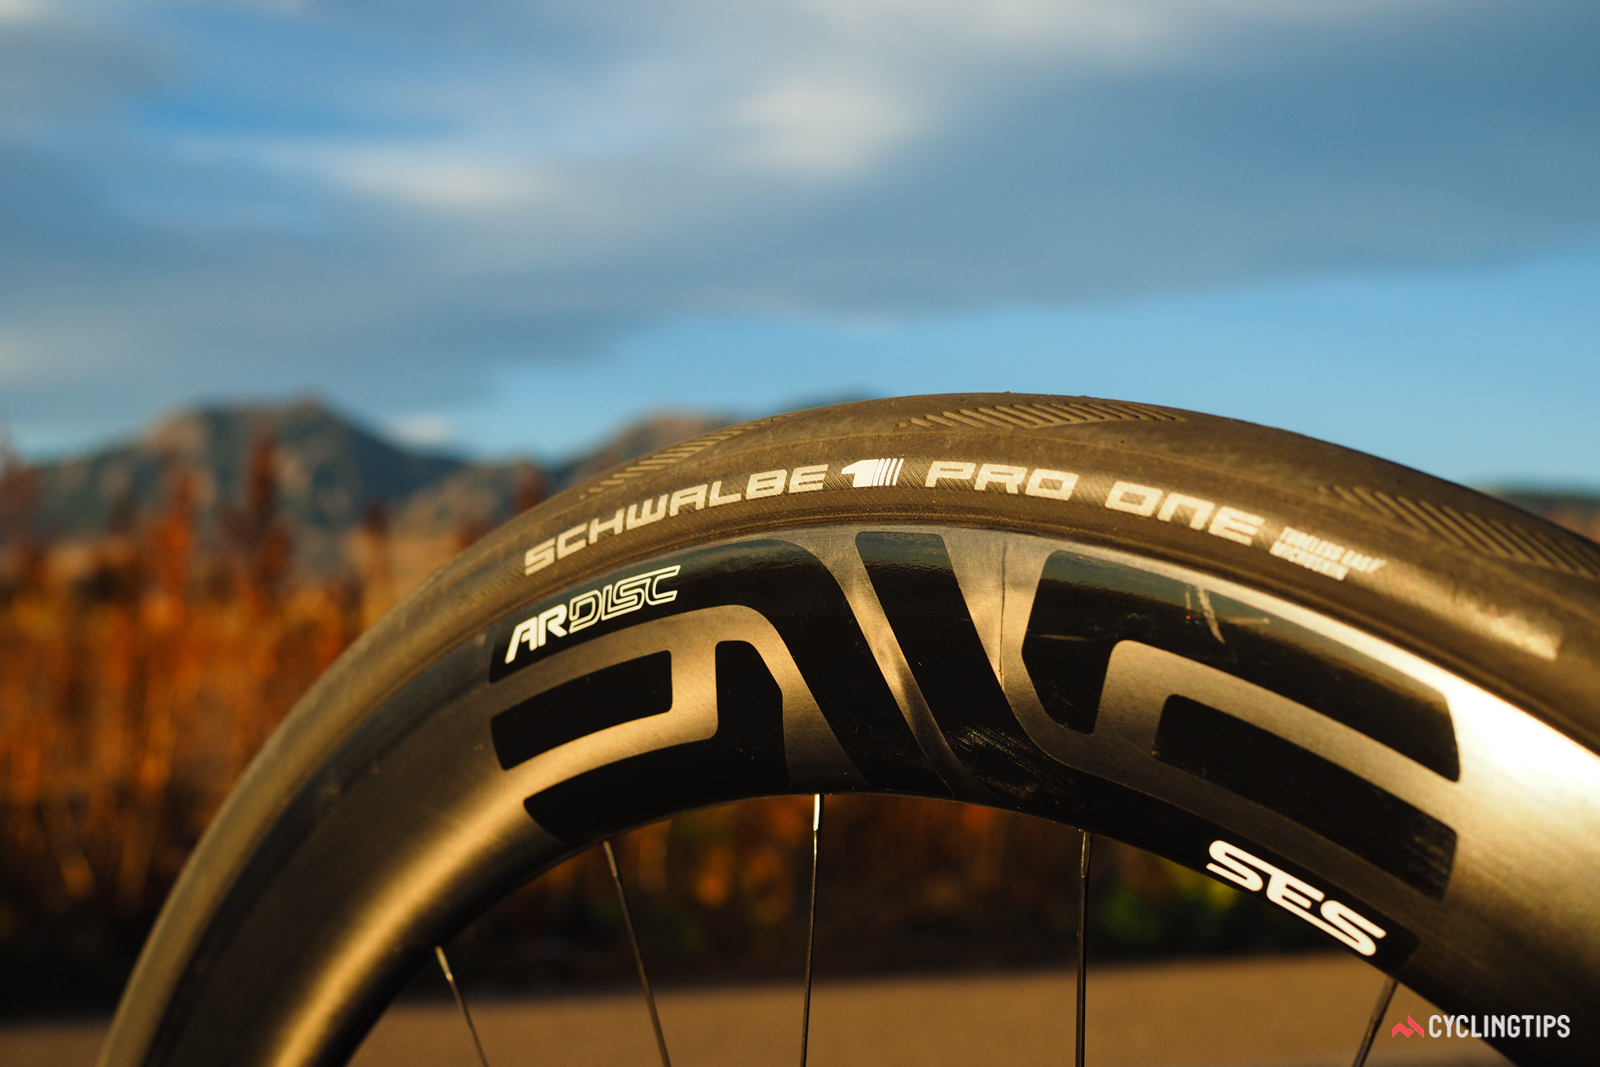 Enve's new SES 4.5AR Disc carbon clinchers are on the cutting edge of the wide-wheel trend, with a 25mm internal width, a 31mm external width, and front/rear-specific aerodynamic shapes that have been designed with 28-30mm tires in mind.